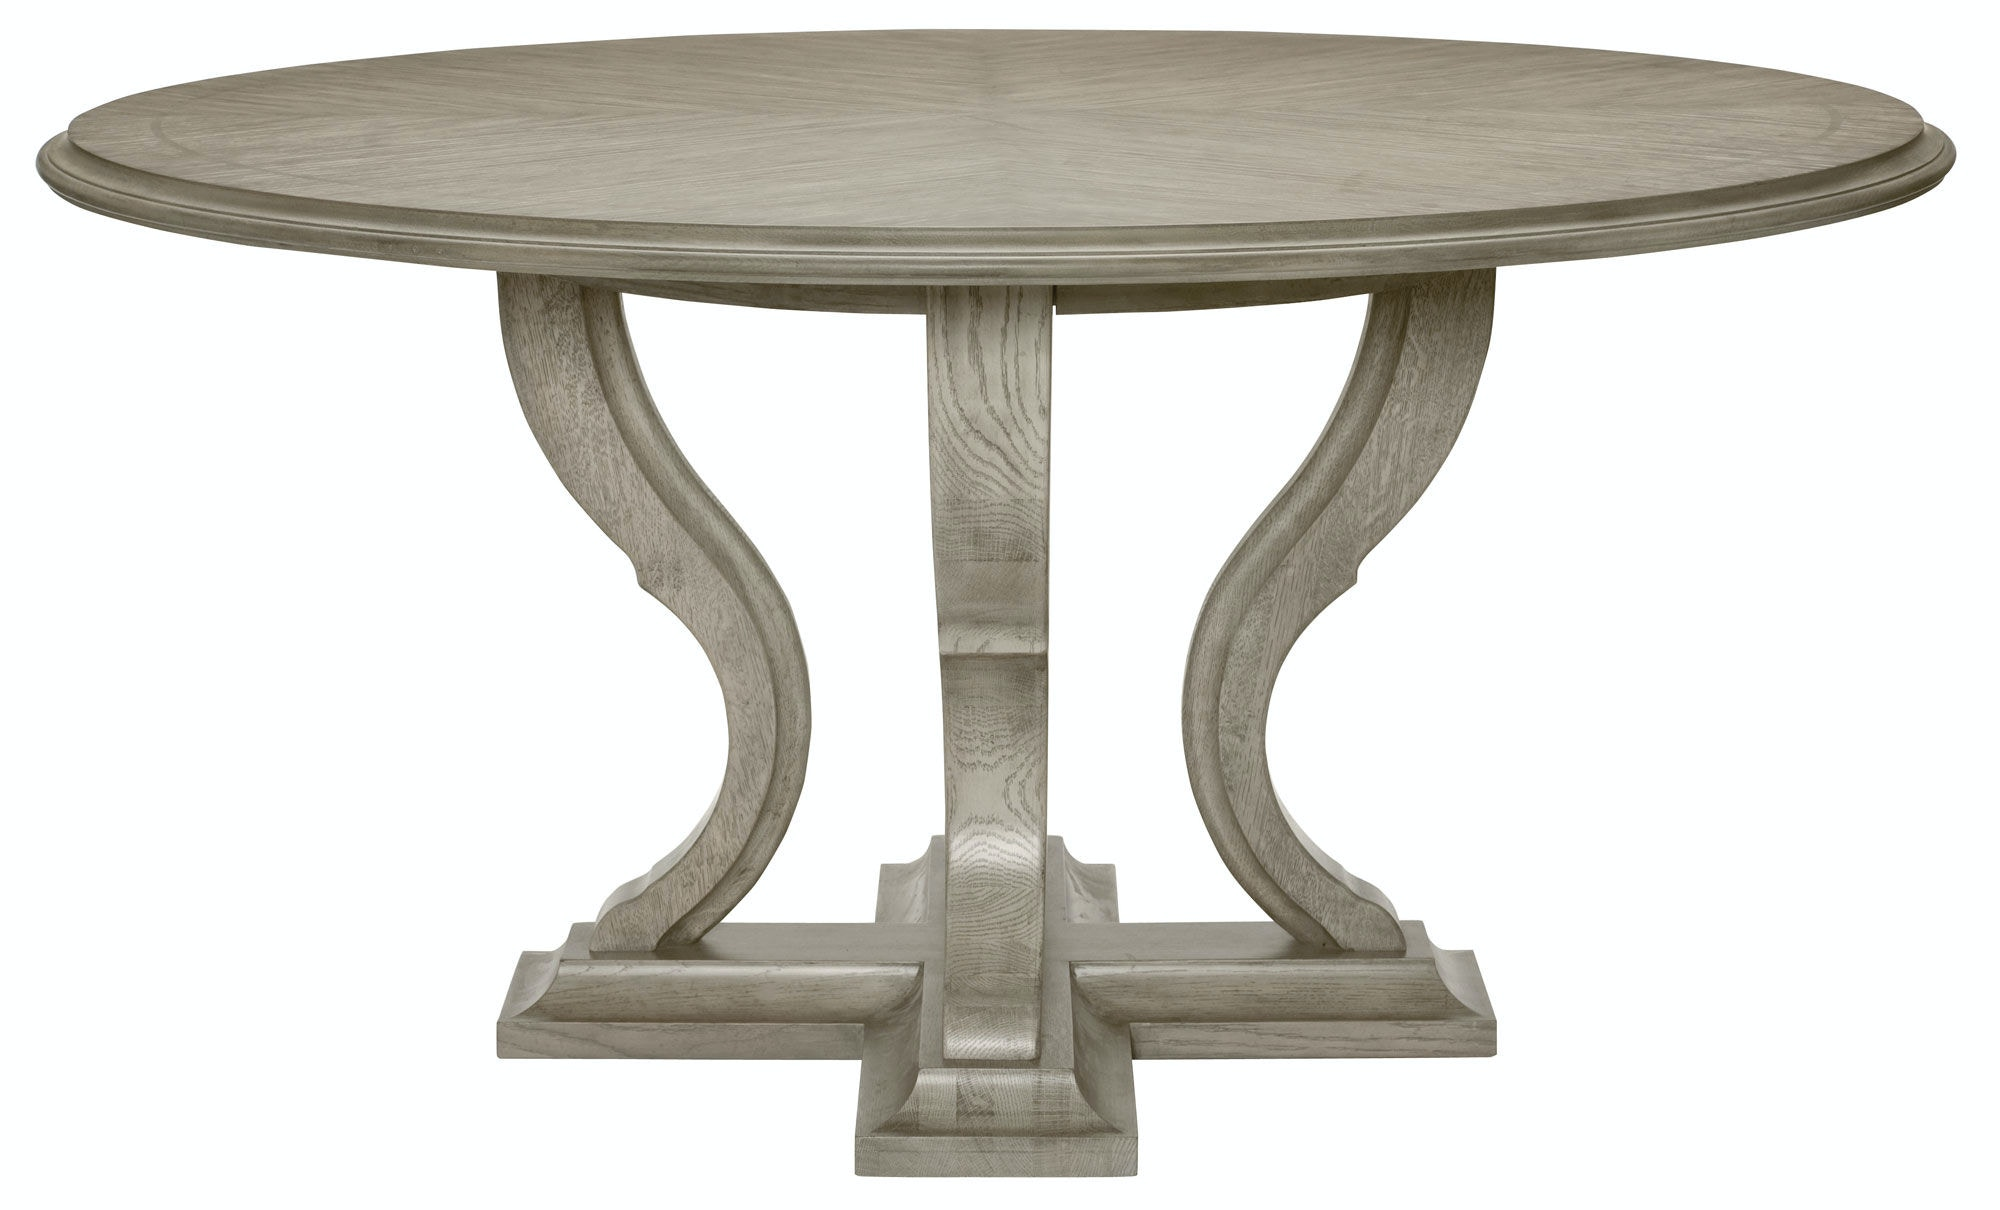 Bernhardt Round Dining Table 359 274